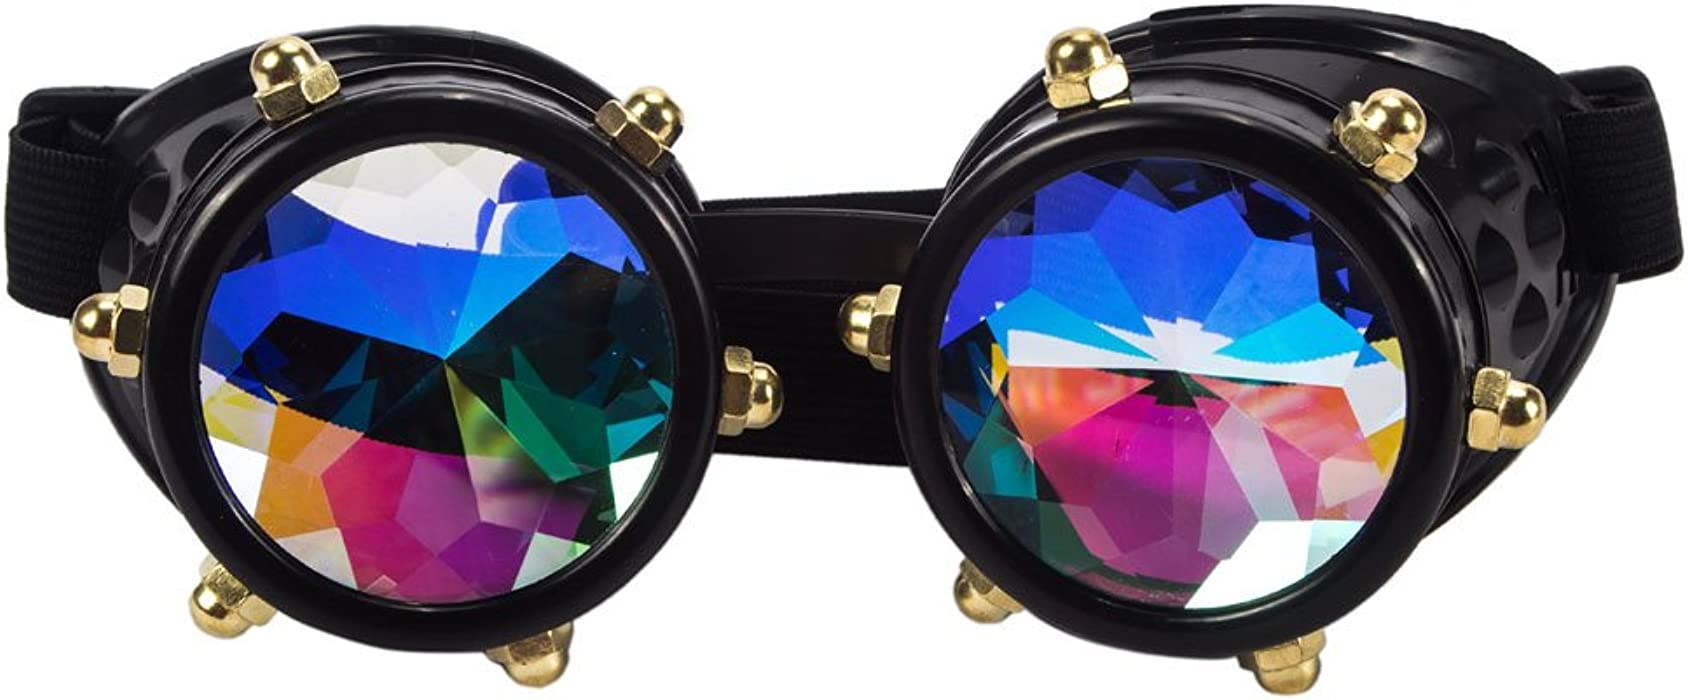 99e762f76b4 Retro Vintage Victorian Steampunk Goggles Glasses Welding Cyber Punk Gothic  Cosplay - Kaleidoscope Prism Real Crystal Rainbow Lenses Goggles